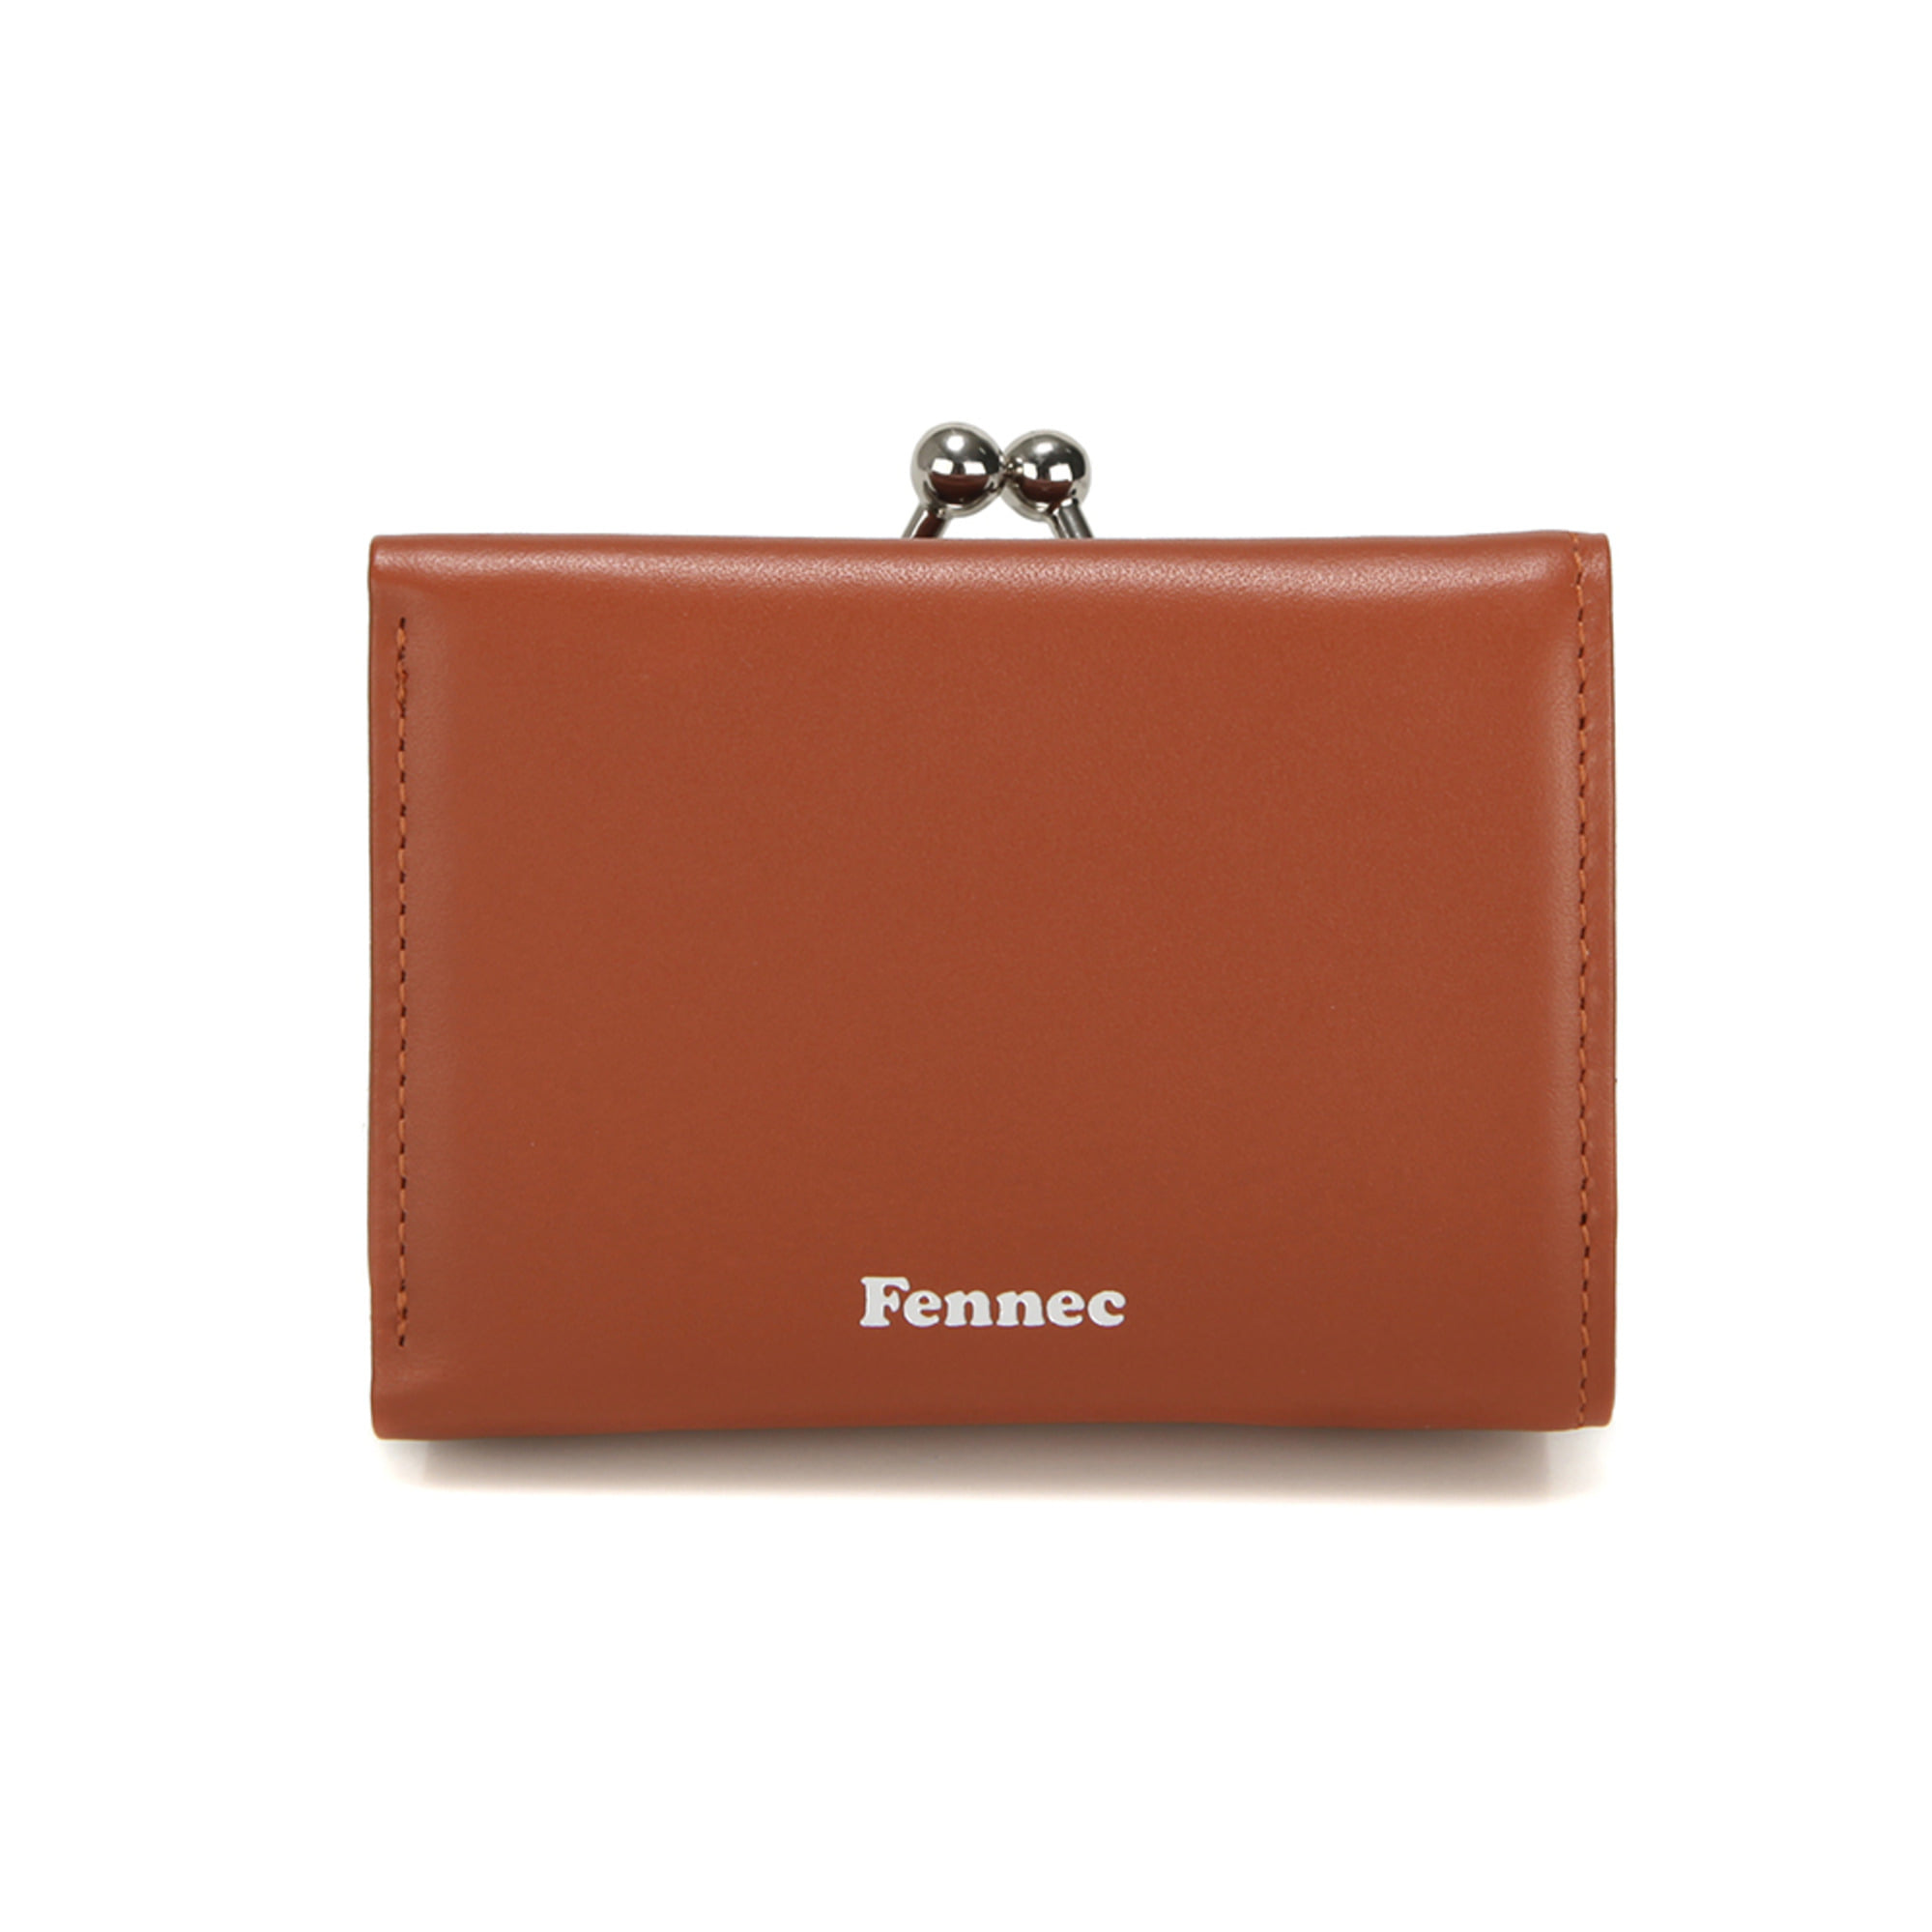 [DISCONTINUE] FRAME TRIPLE WALLET - AMBER